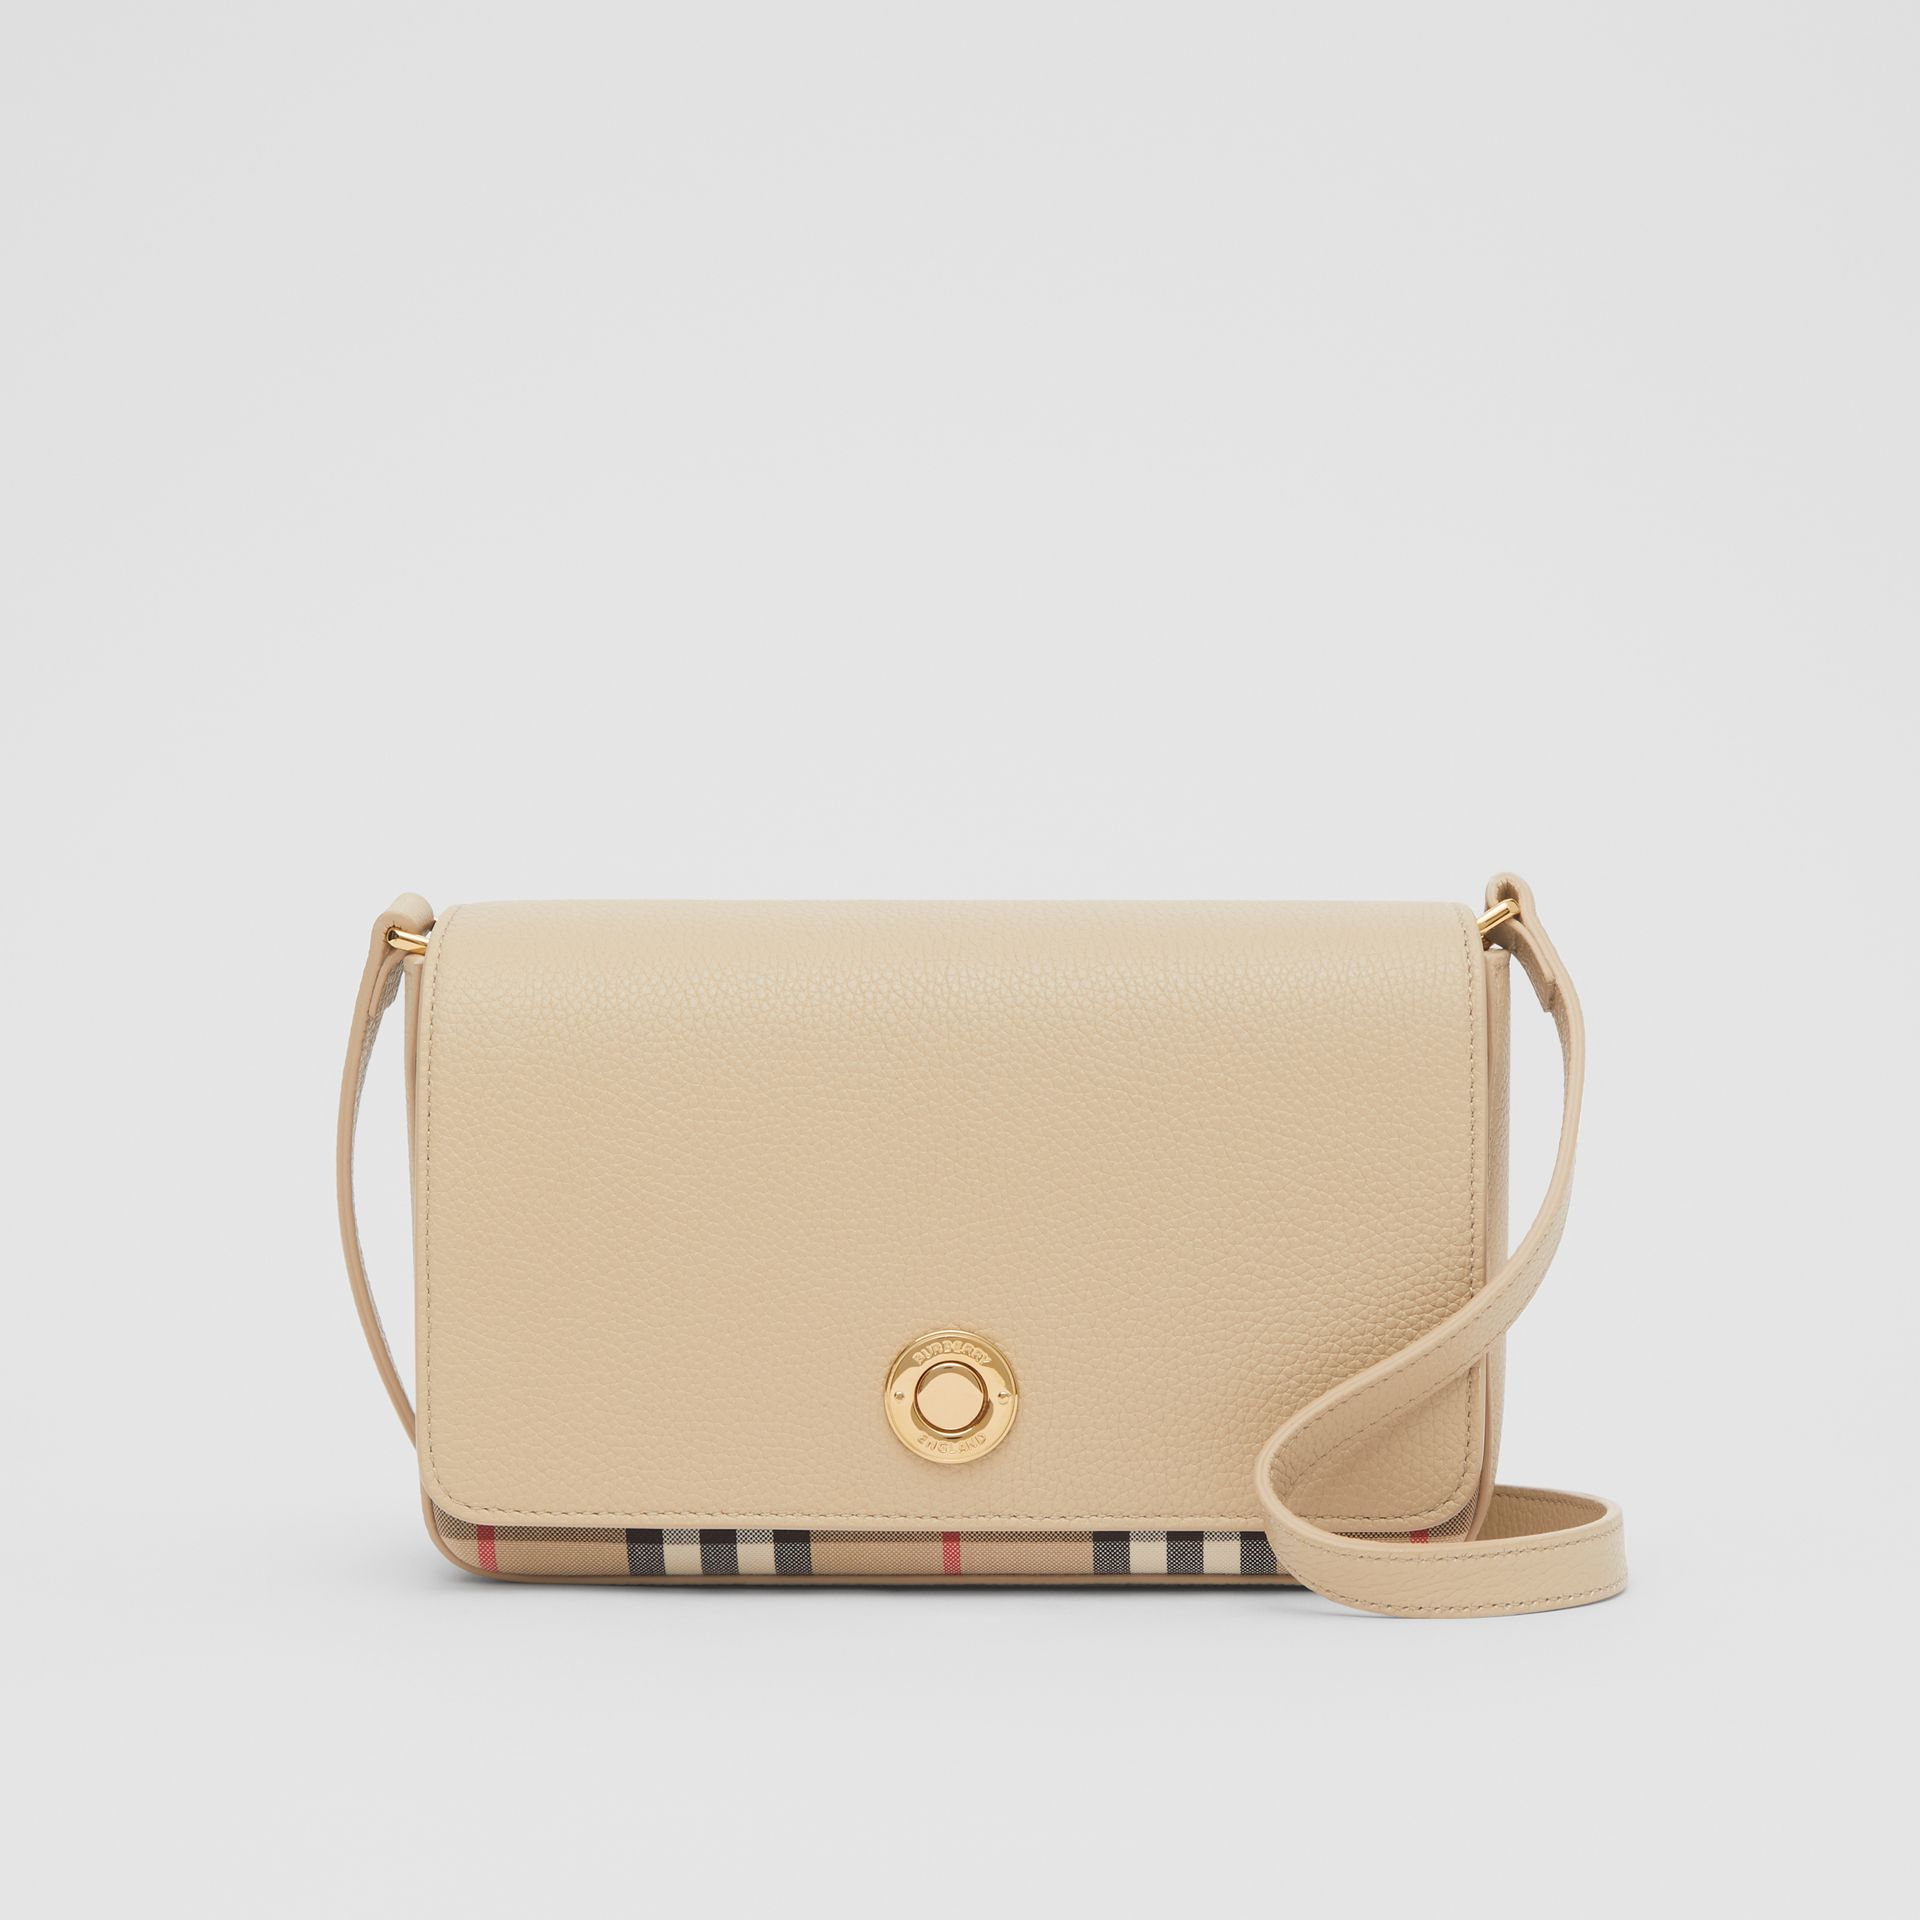 Small Leather and Vintage Check Crossbody Bag in Light Beige - Women | Burberry United Kingdom - gallery image 0